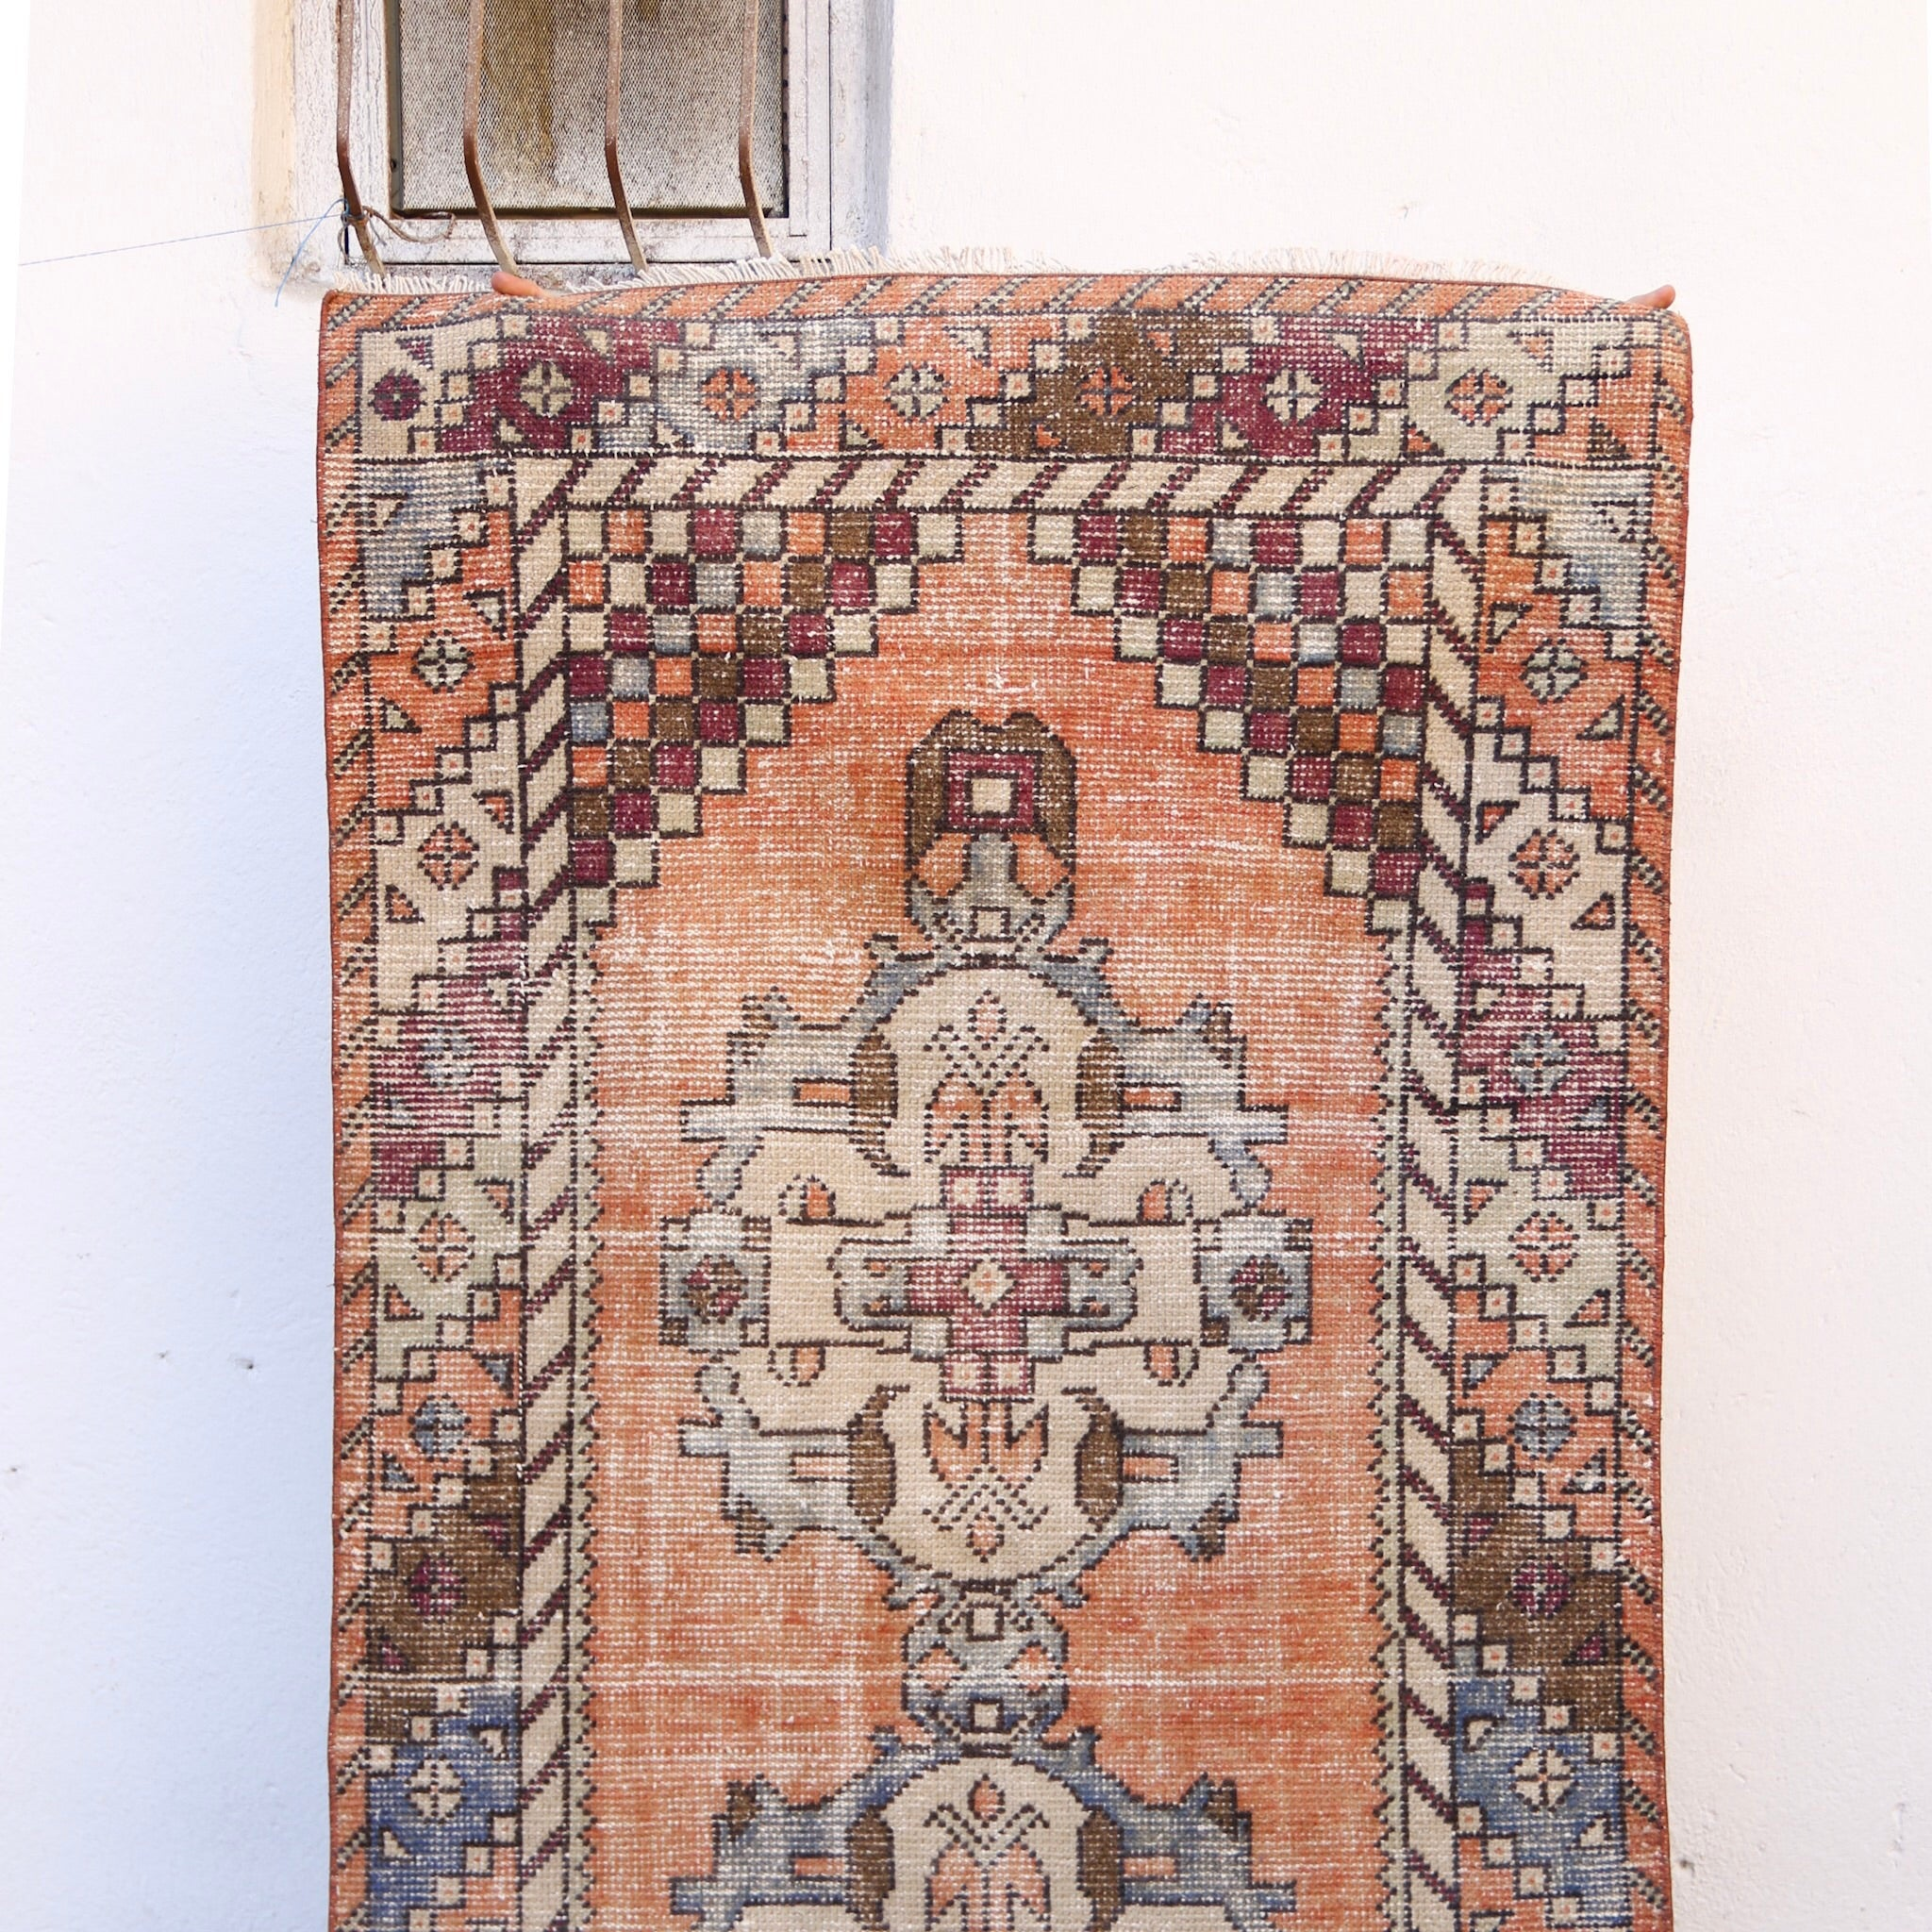 This handwoven vintage Turkish rug has beautiful warm colors. Periwinkle and purple accents. Niğde.